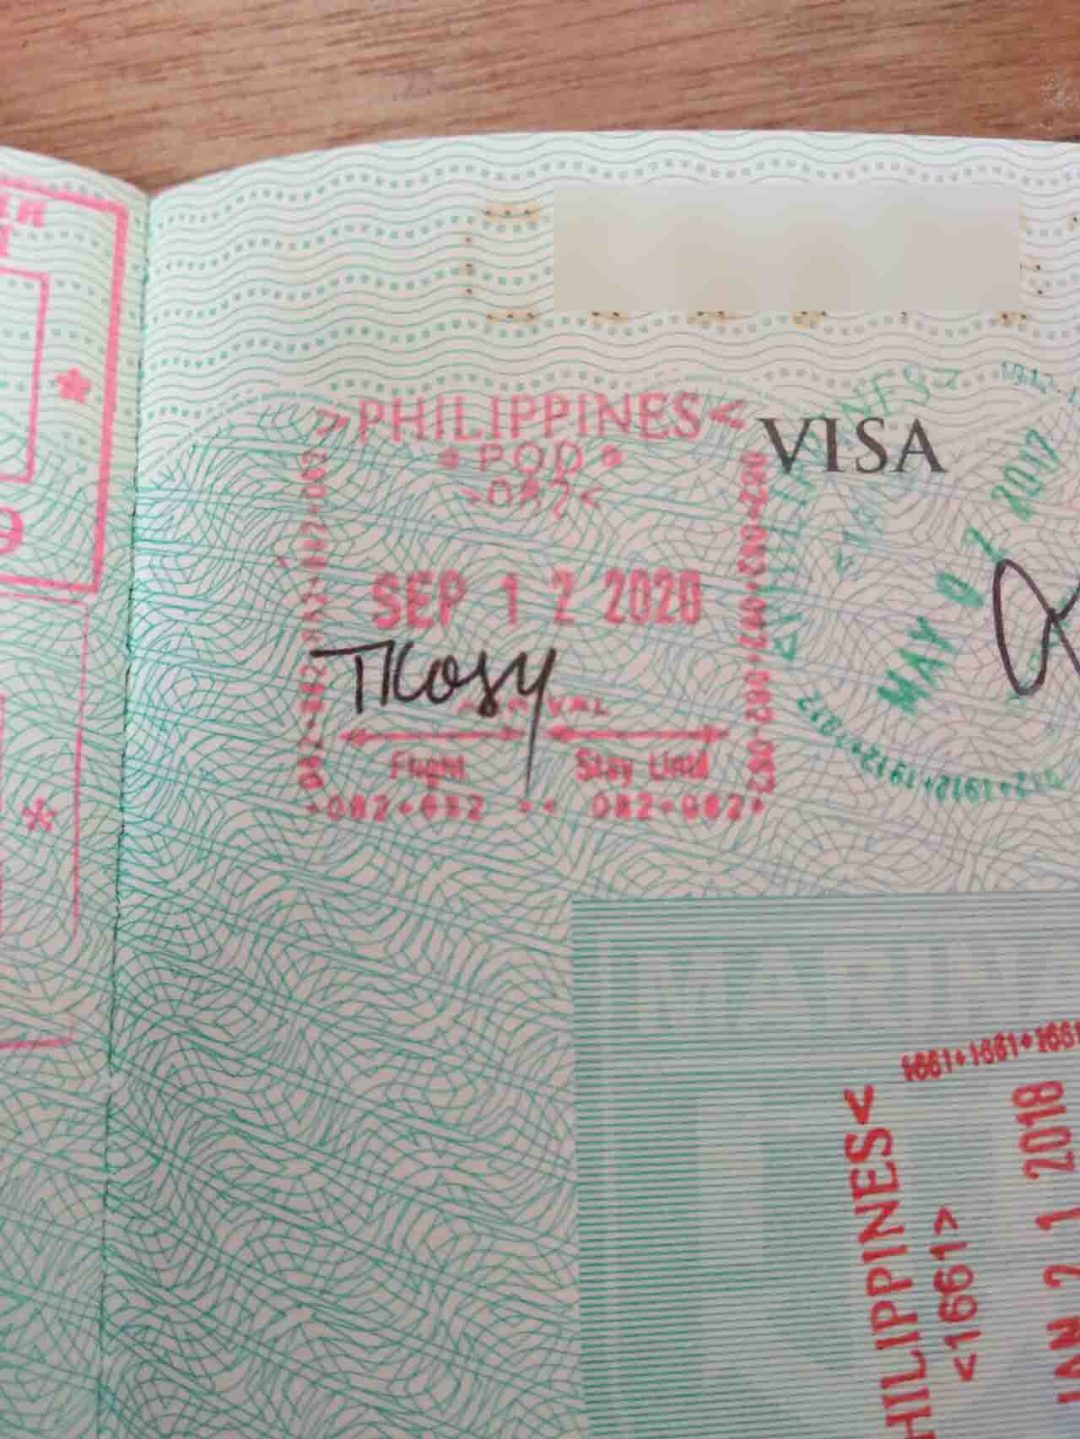 Proof of latest arrival in the Philippines (Arrival Stamp)